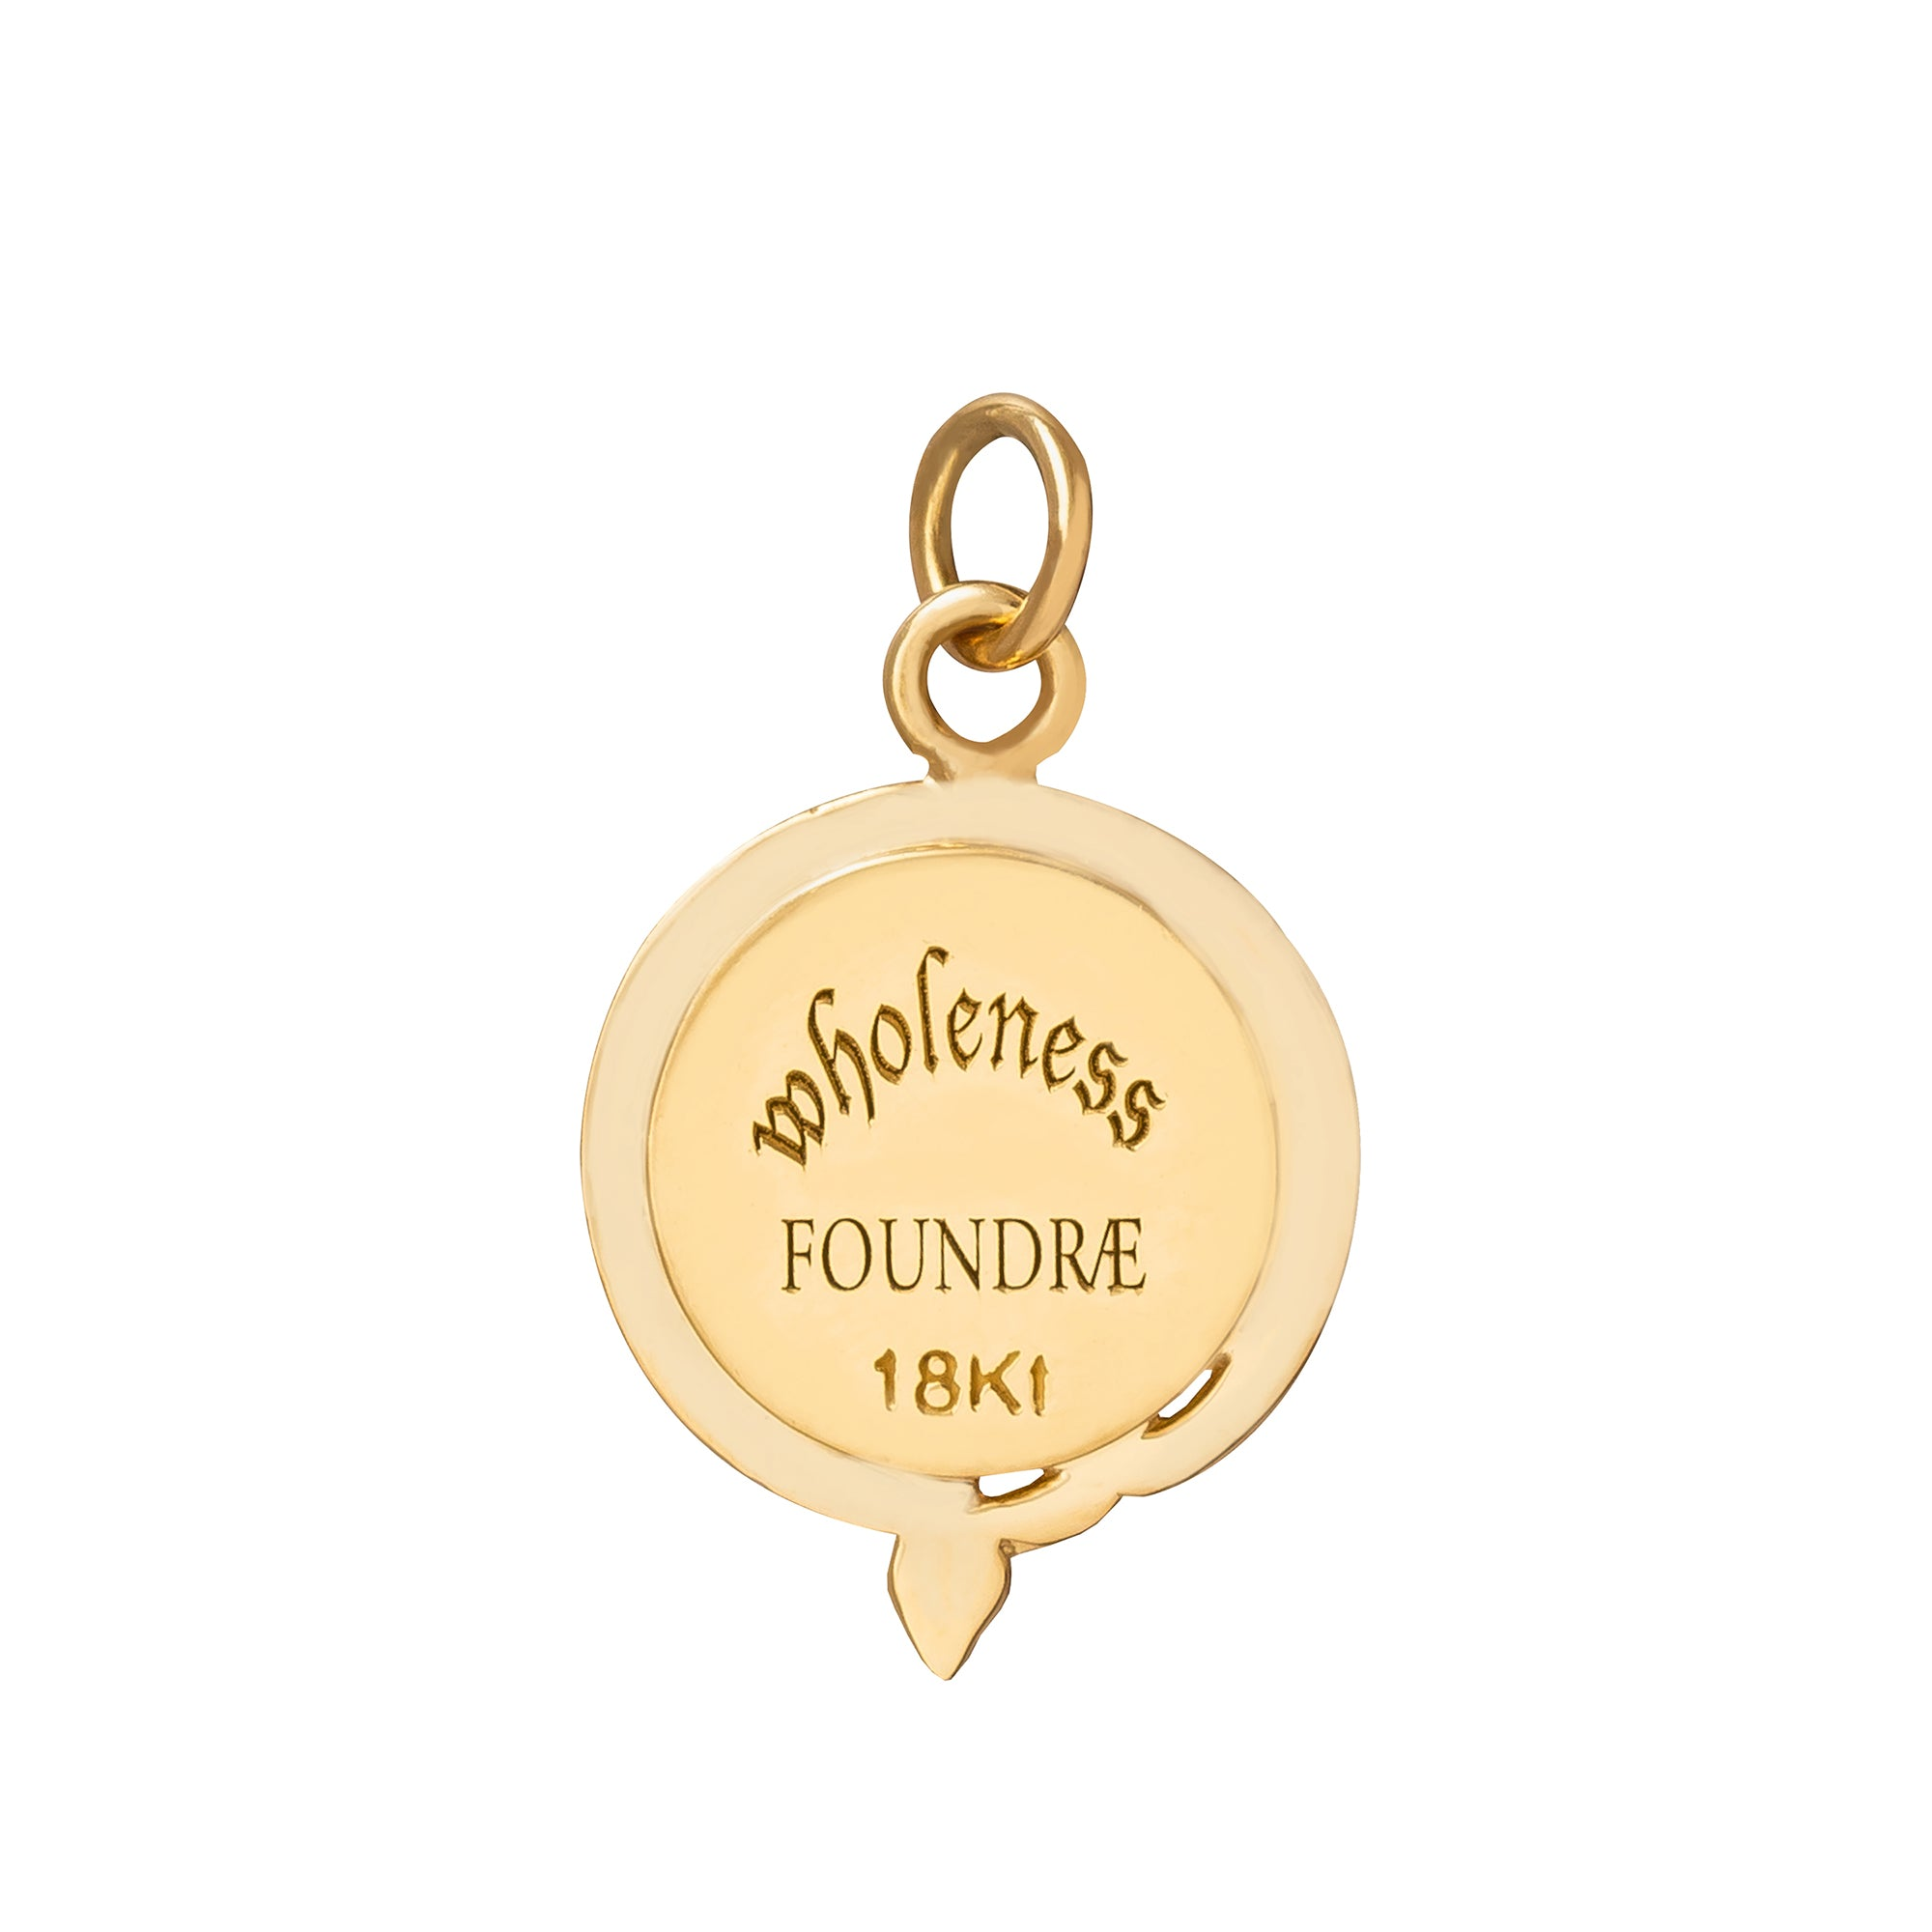 Petite Wholeness Medallion - Foundrae - Charms & Pendants | Broken English Jewelry